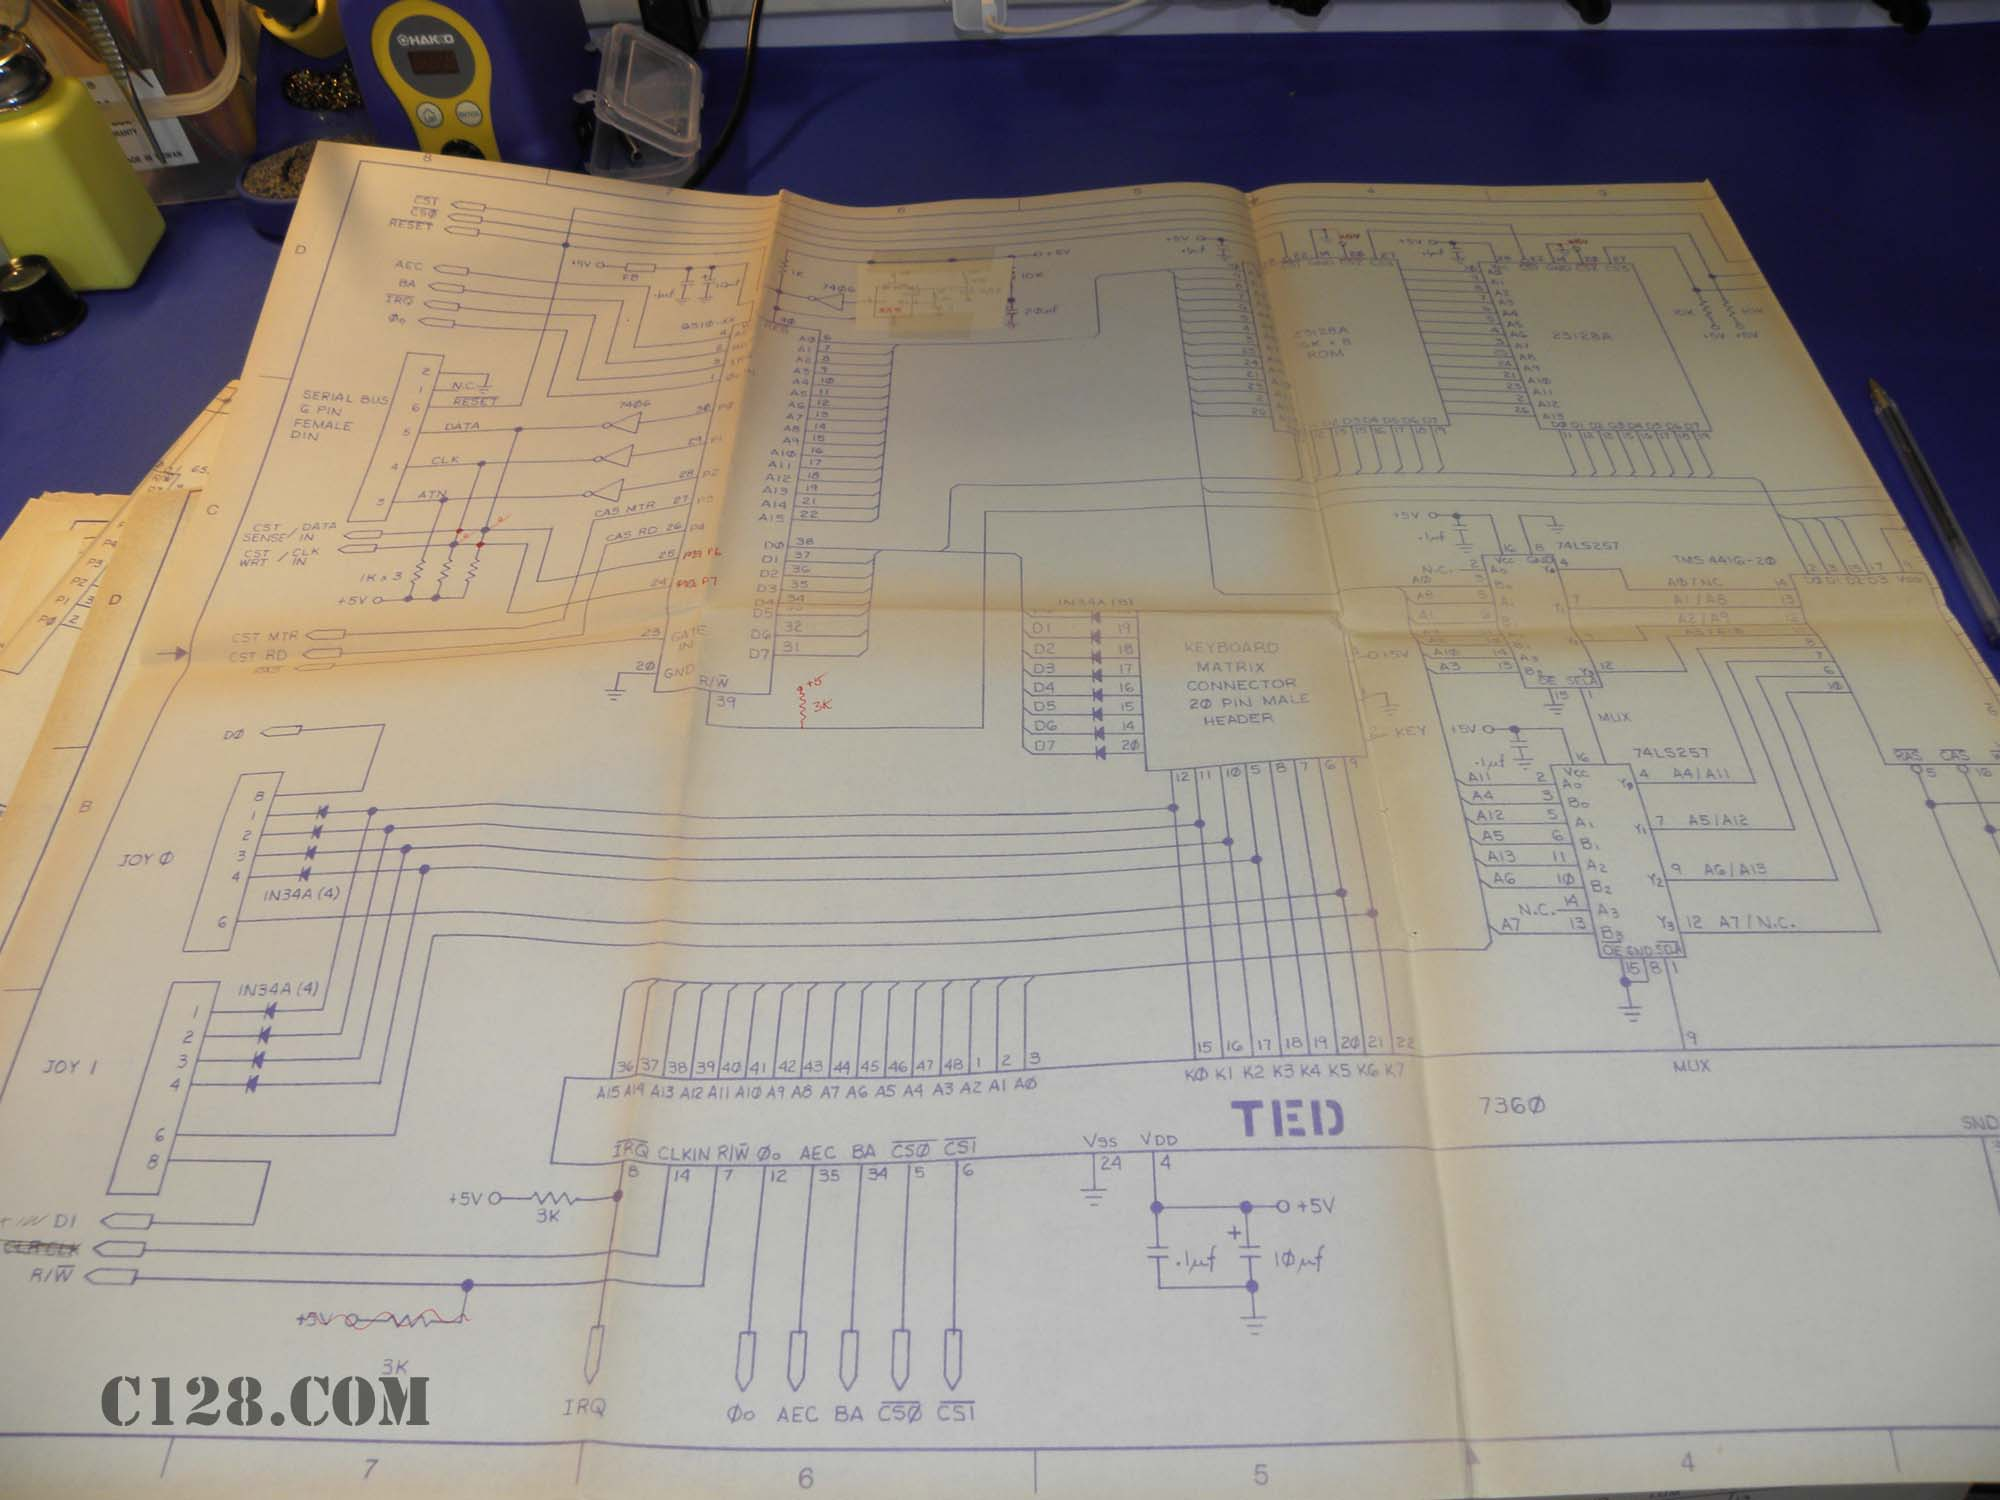 Ted Drawings From The 1980s 555 Circuitjpg Cb Commodore C116 C264 Plus 4 Bil Herd